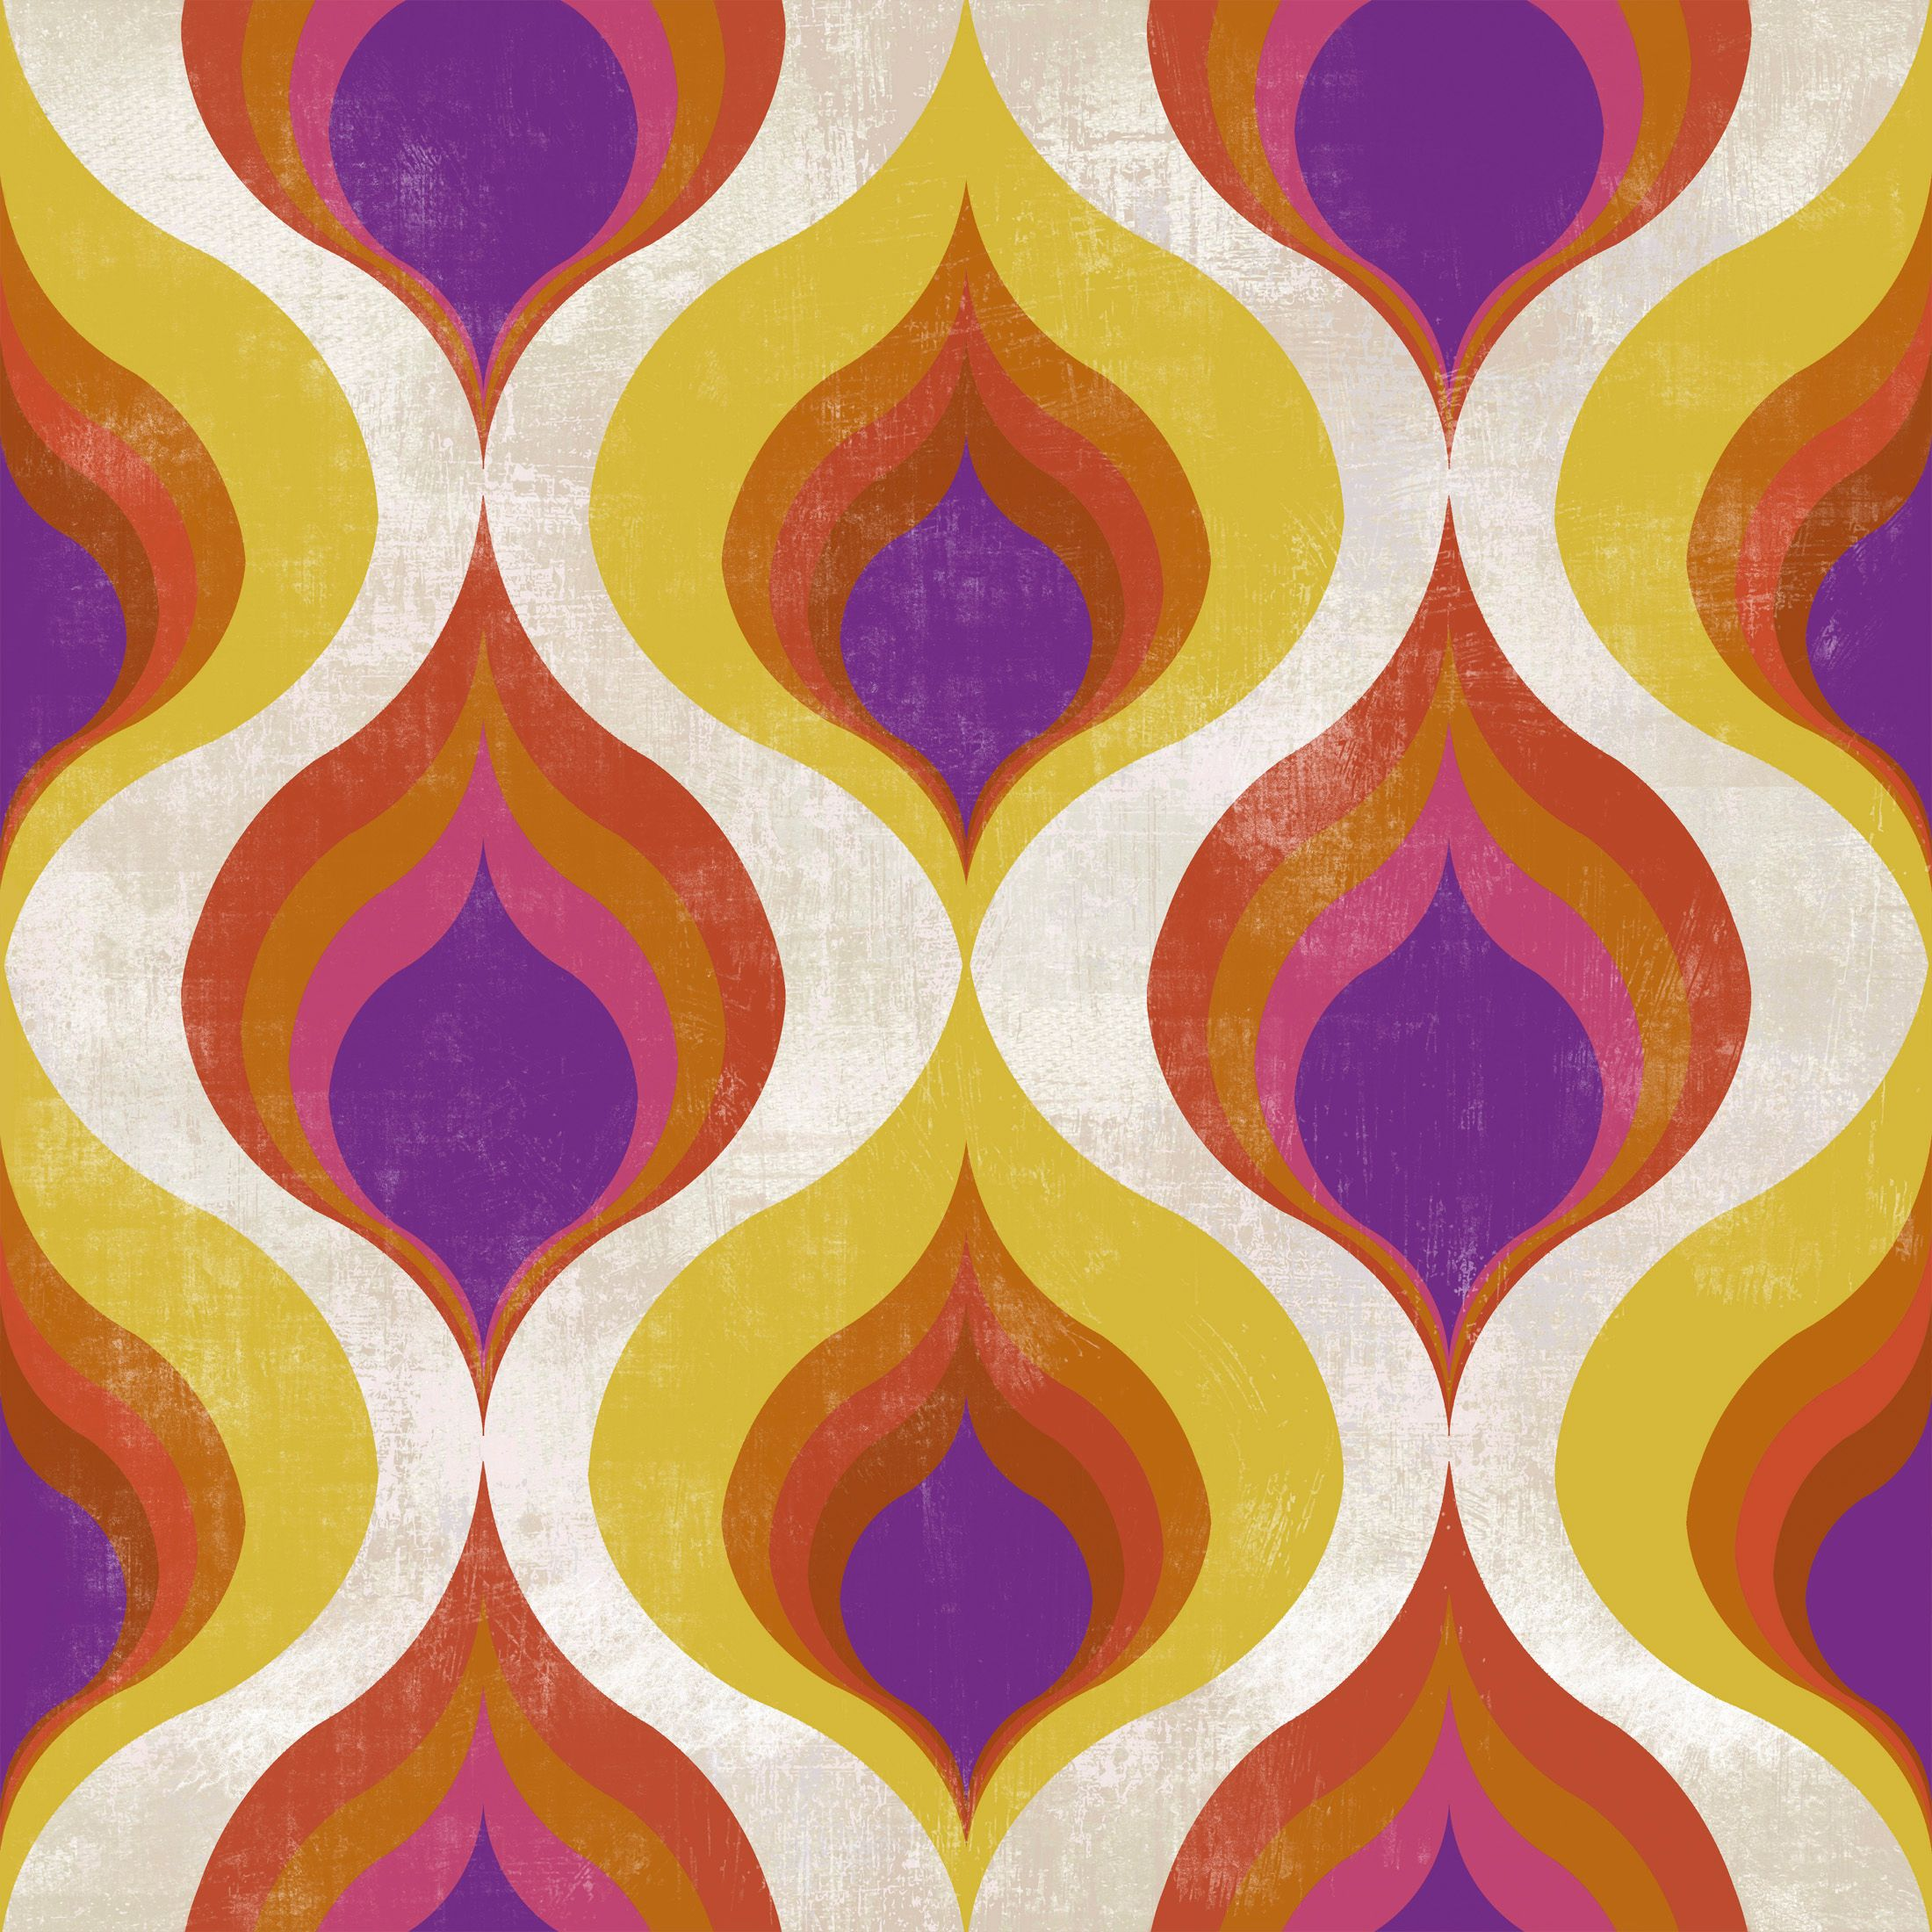 OTTOMAN PATTERN Premium Wallpaper